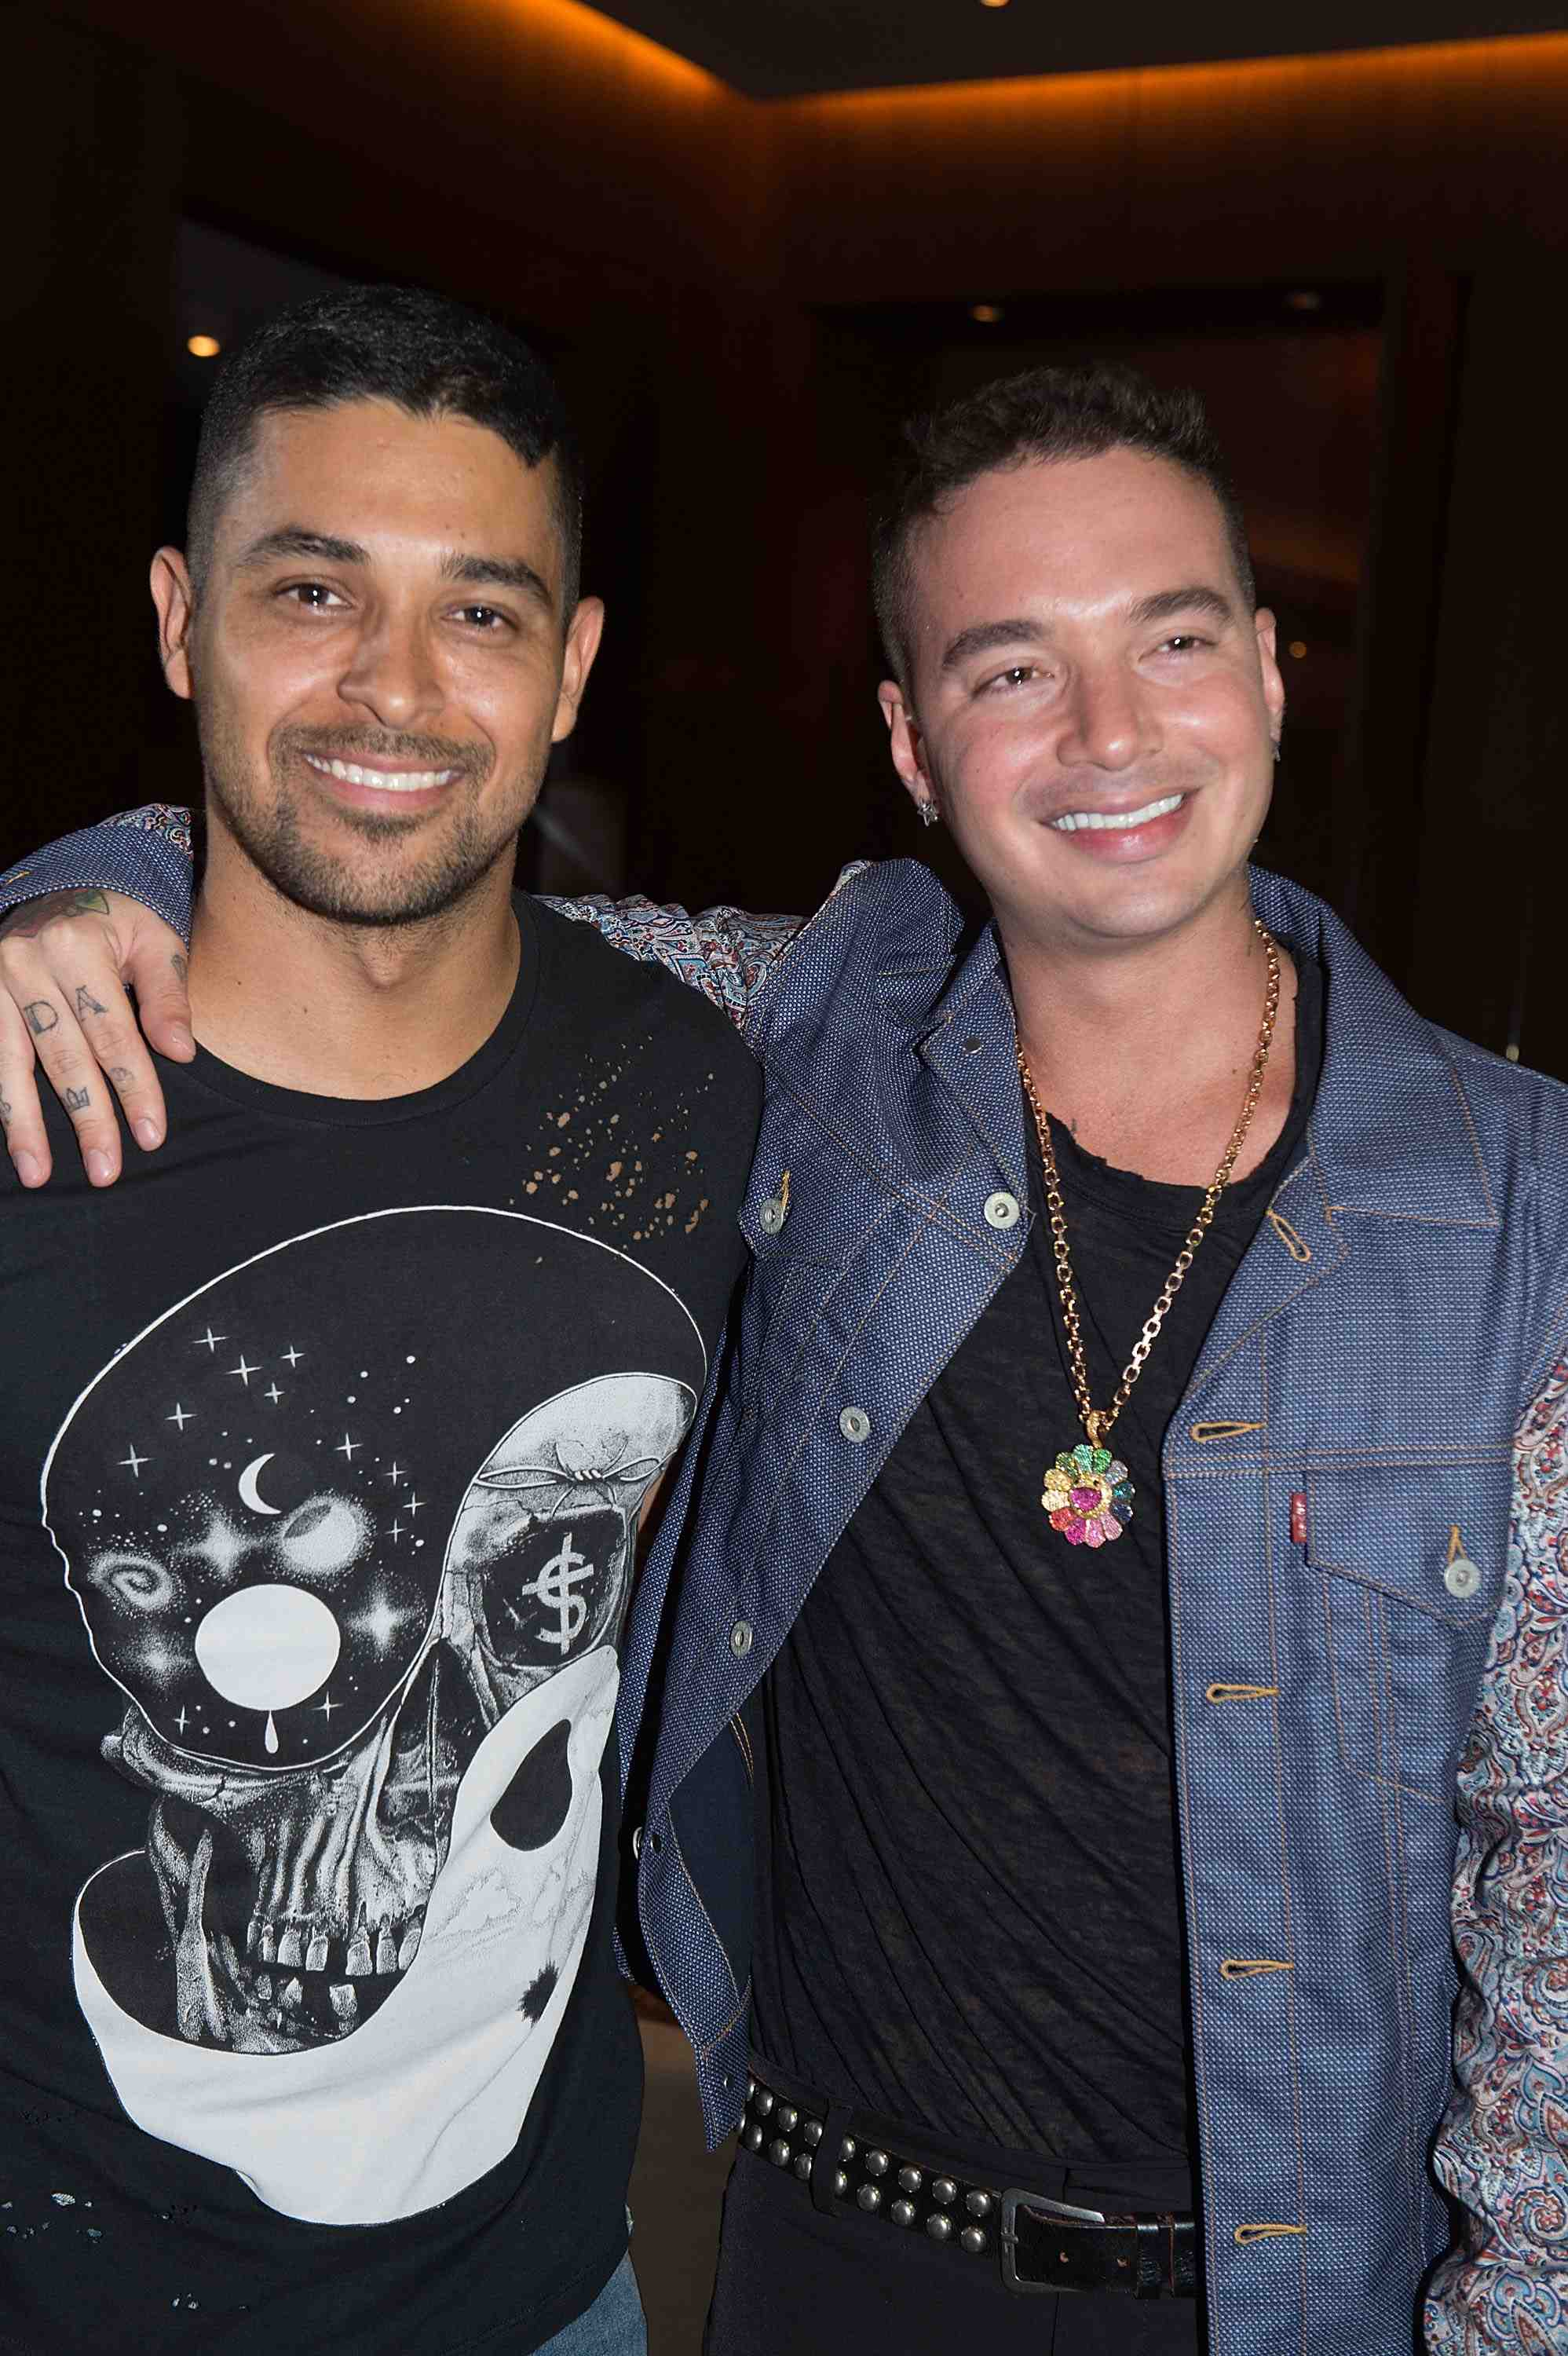 MIAMI BEACH, FL - JULY 05: J Balvin and Wilmer Valderrama attend Haute Living Celebrates J Balvin At Matador Room At The Miami Beach Edition With Buchanan's Whisky